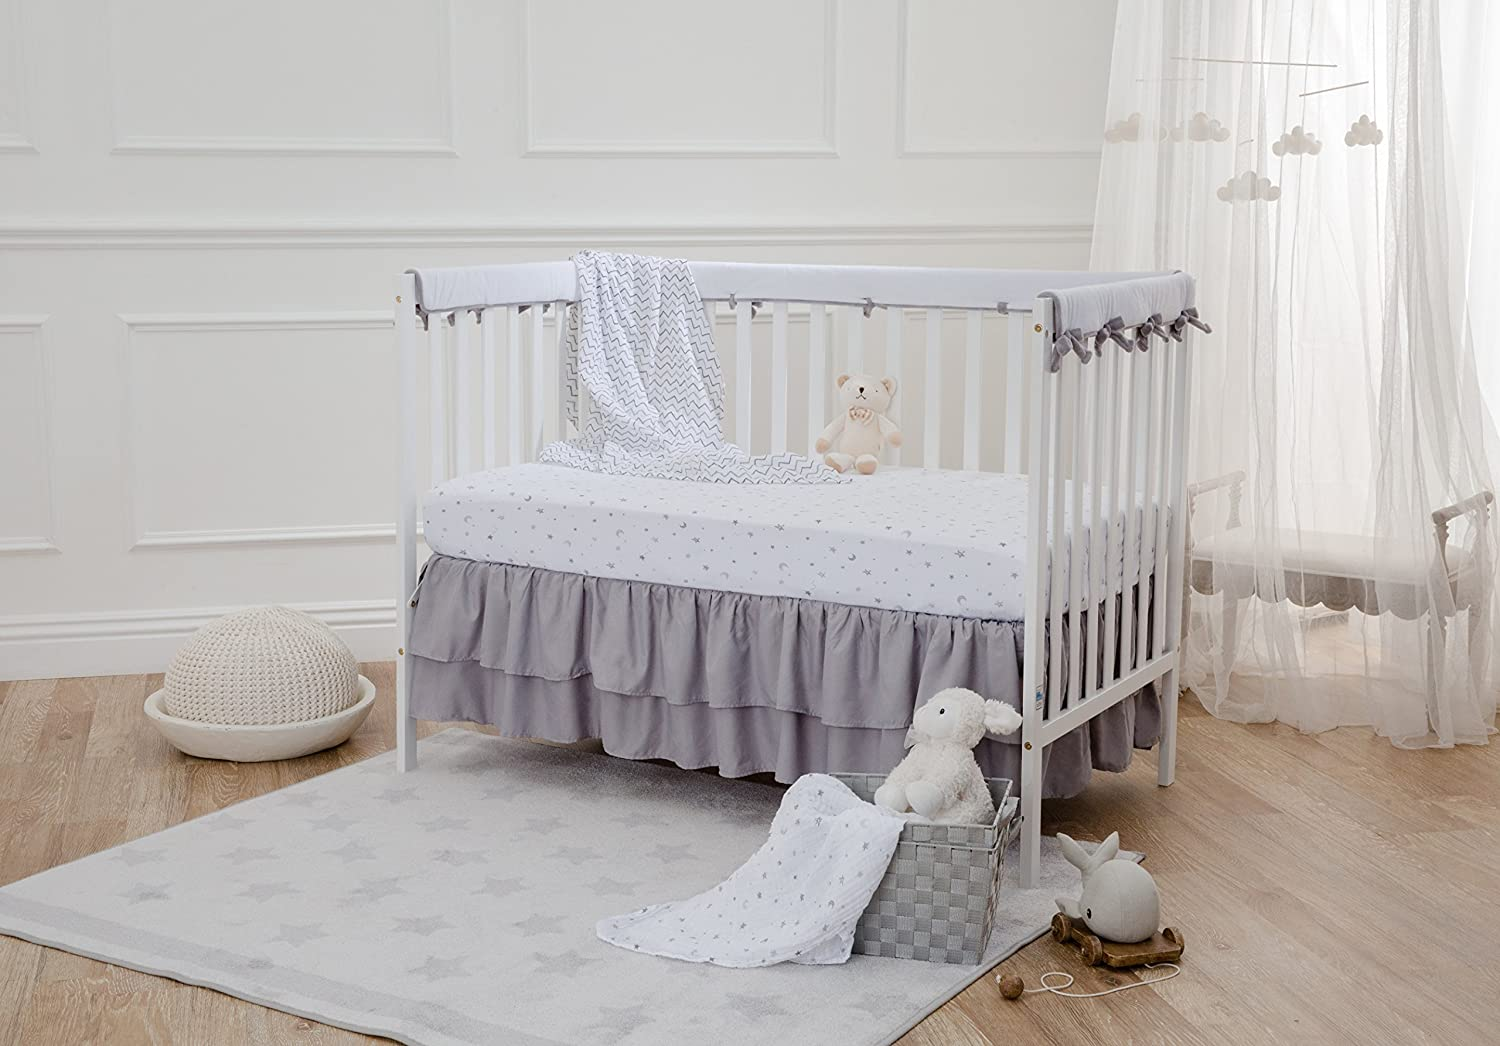 American Baby Company Heavenly Soft Narrow Reversible Crib Cover Set for 1 Long Rail /& 2 Side Rails Measuring up to 4 folded Gray//White